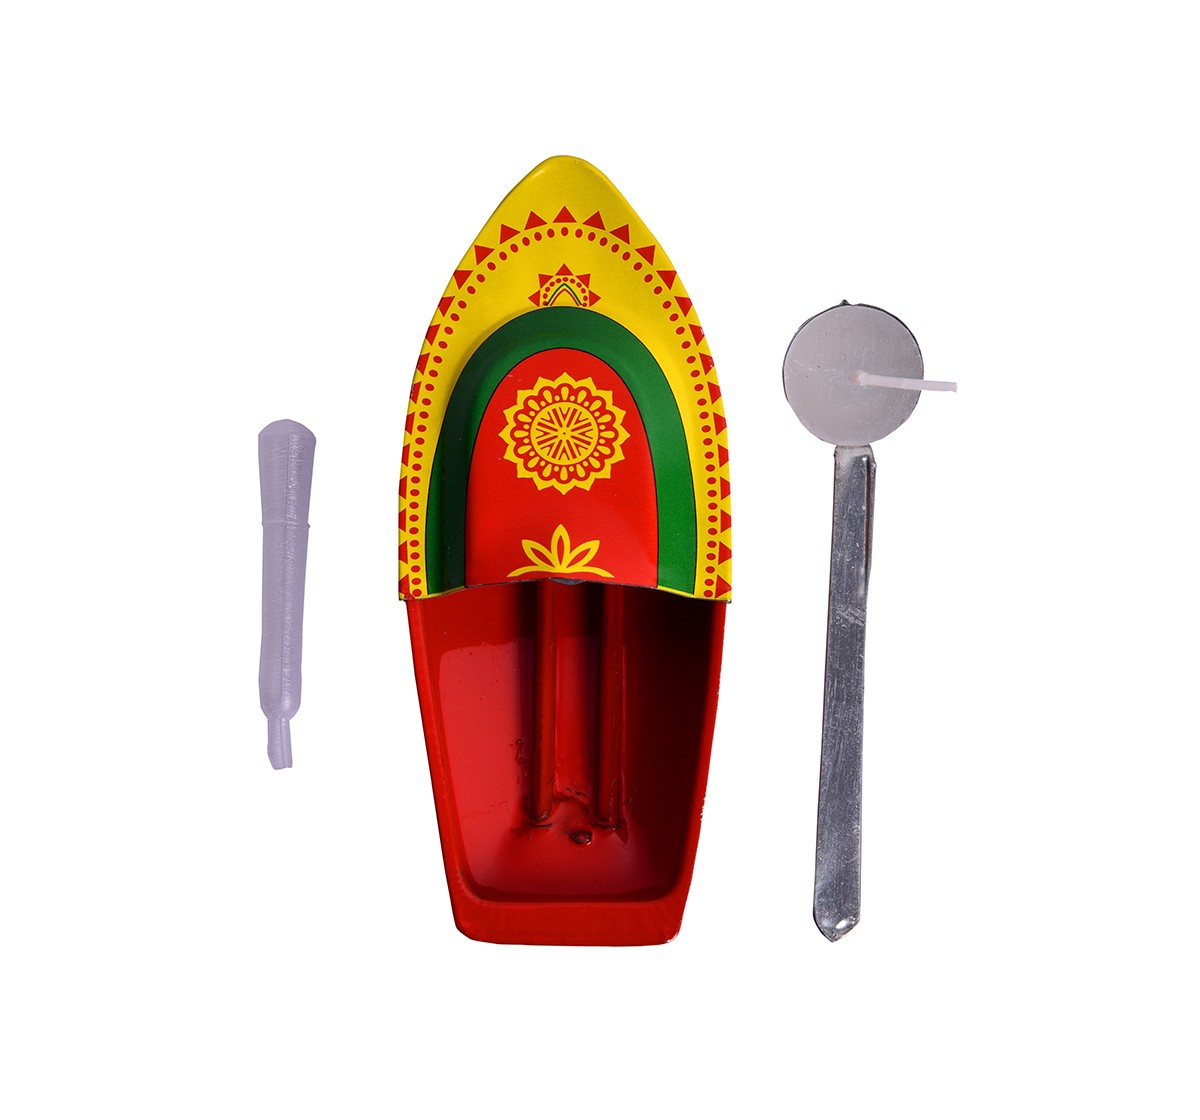 Desi Toys Premium Steam Toy Tin Boat, Putt Putt Nav Classic Game for Kids age 5Y+